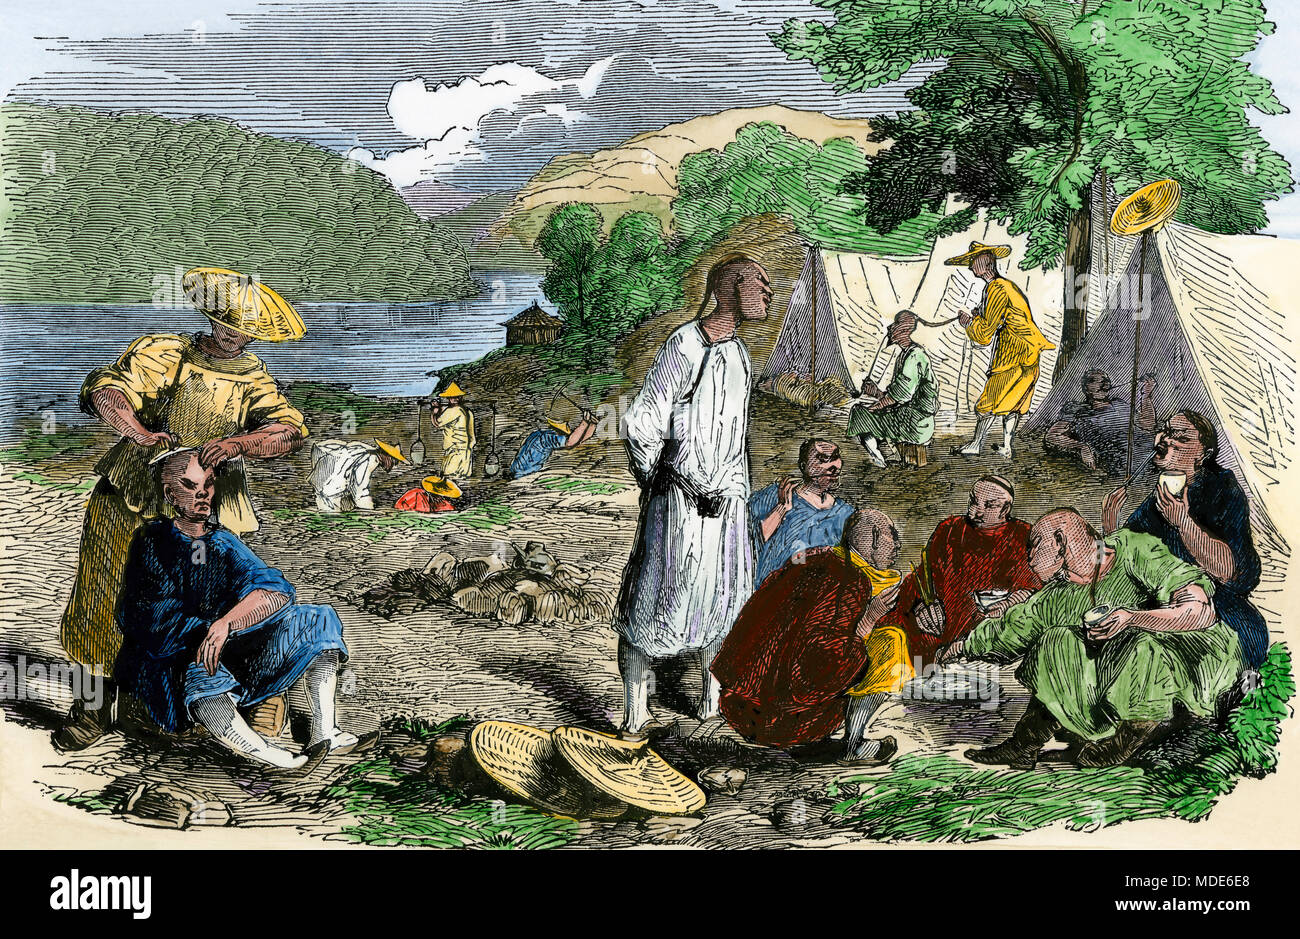 Chinese immigrant prospectors' camp in the California Gold Rush, 1850s. Hand-colored woodcut - Stock Image